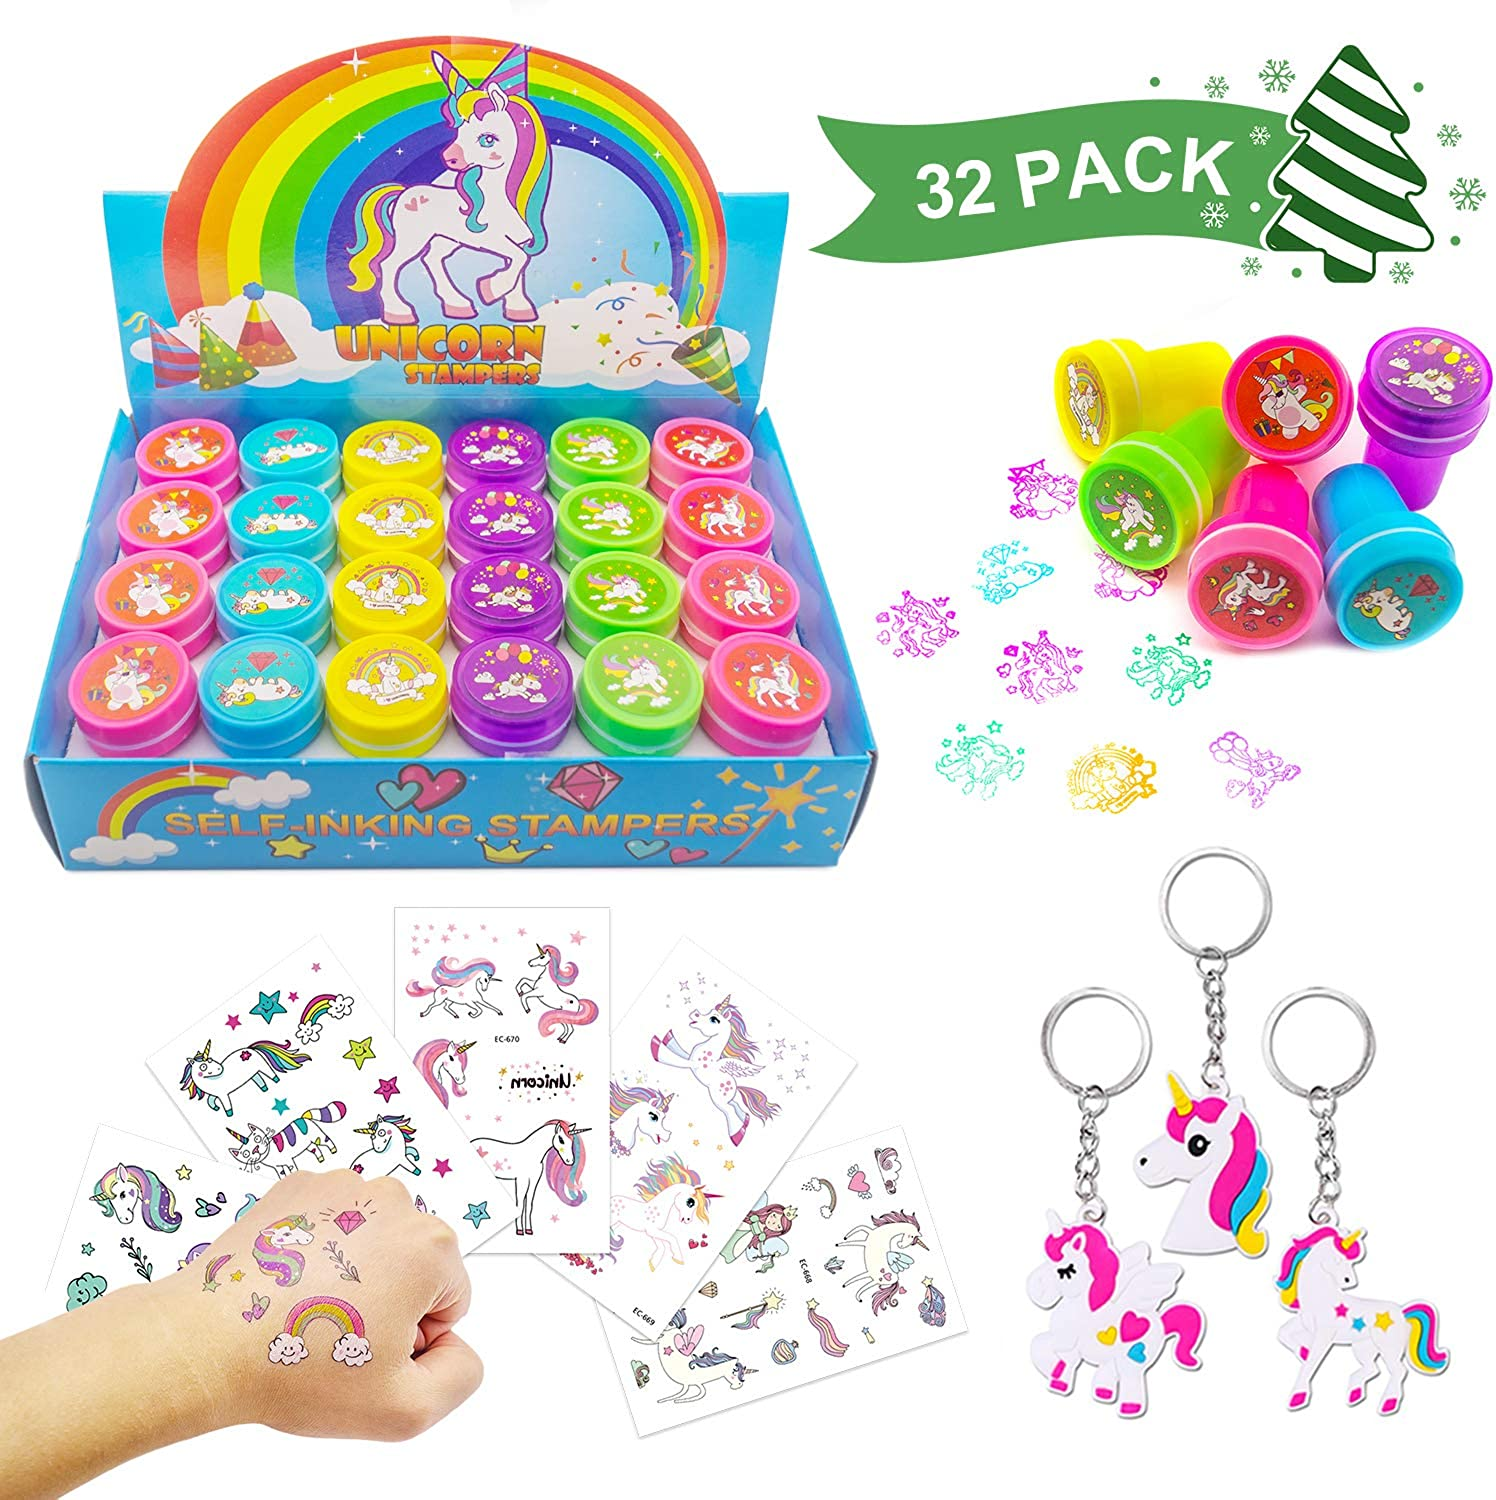 Elifebox 24 PCS Rainbow Unicorn Stampers Set, 5 Sheets Waterproof Rainbow Unicorn Temporary Tattoos for Kids Unicorn Party with Free Gift